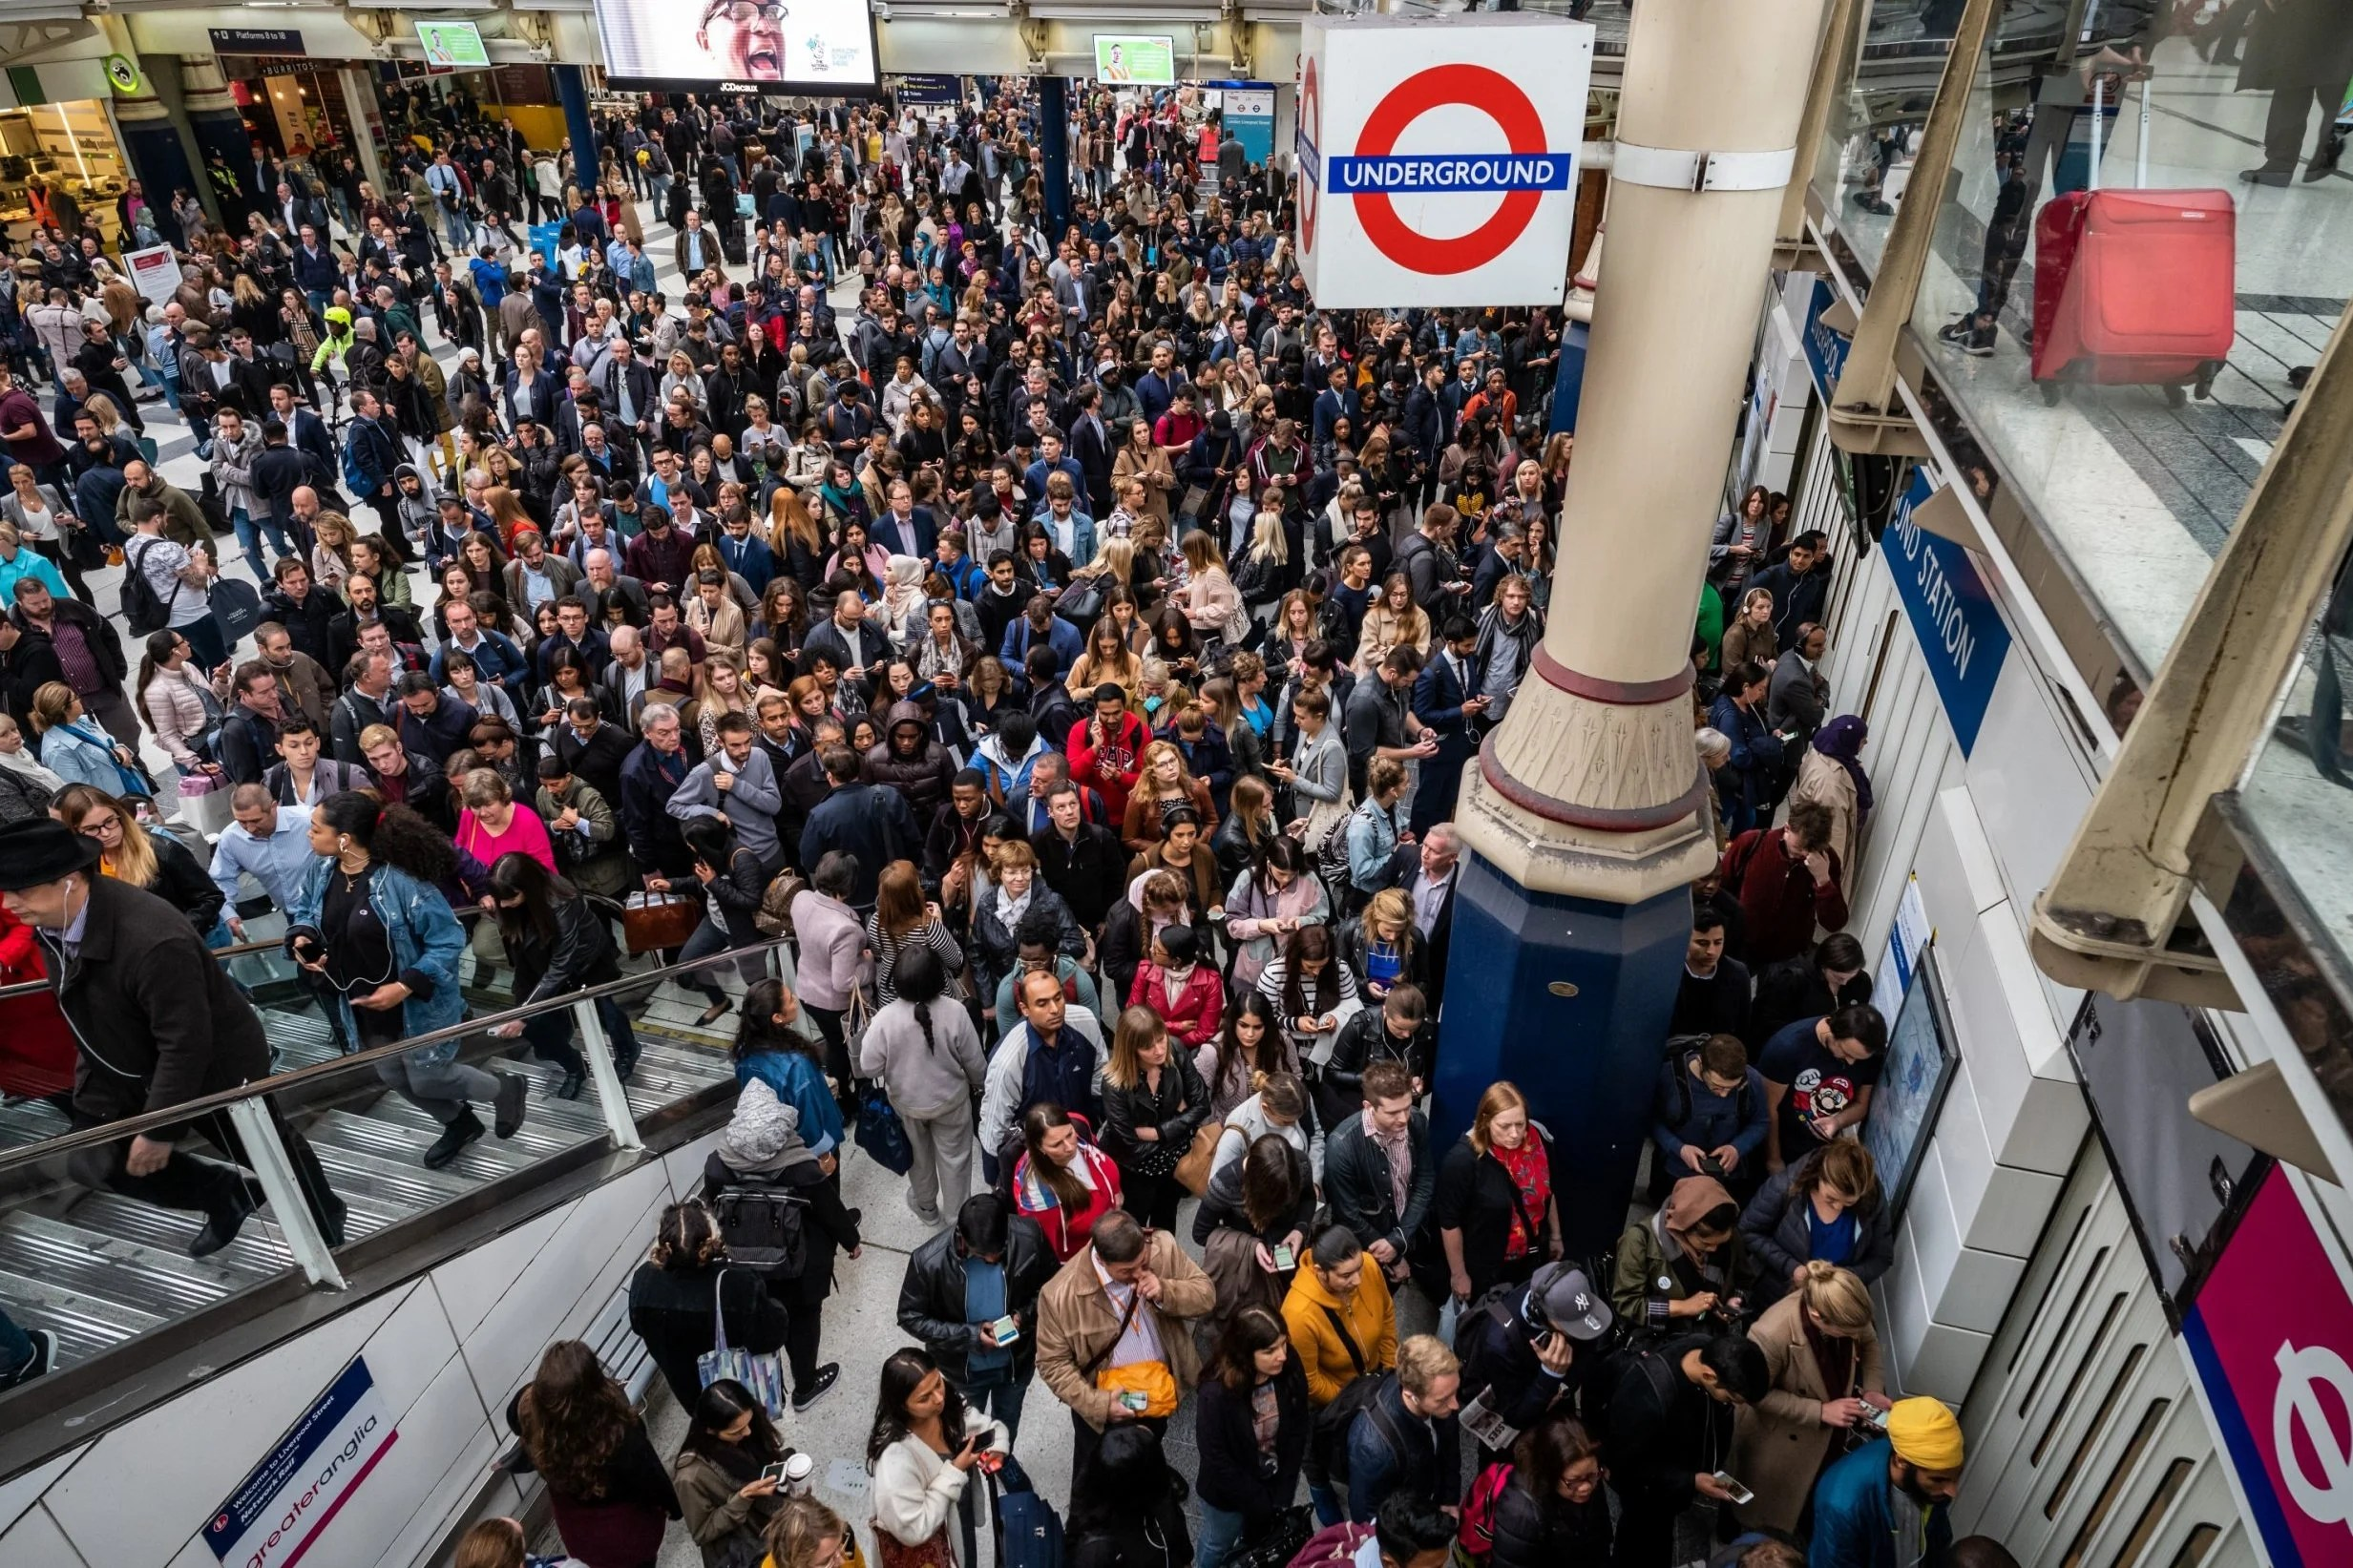 Central line strike TfL commuters face Tube chaos as